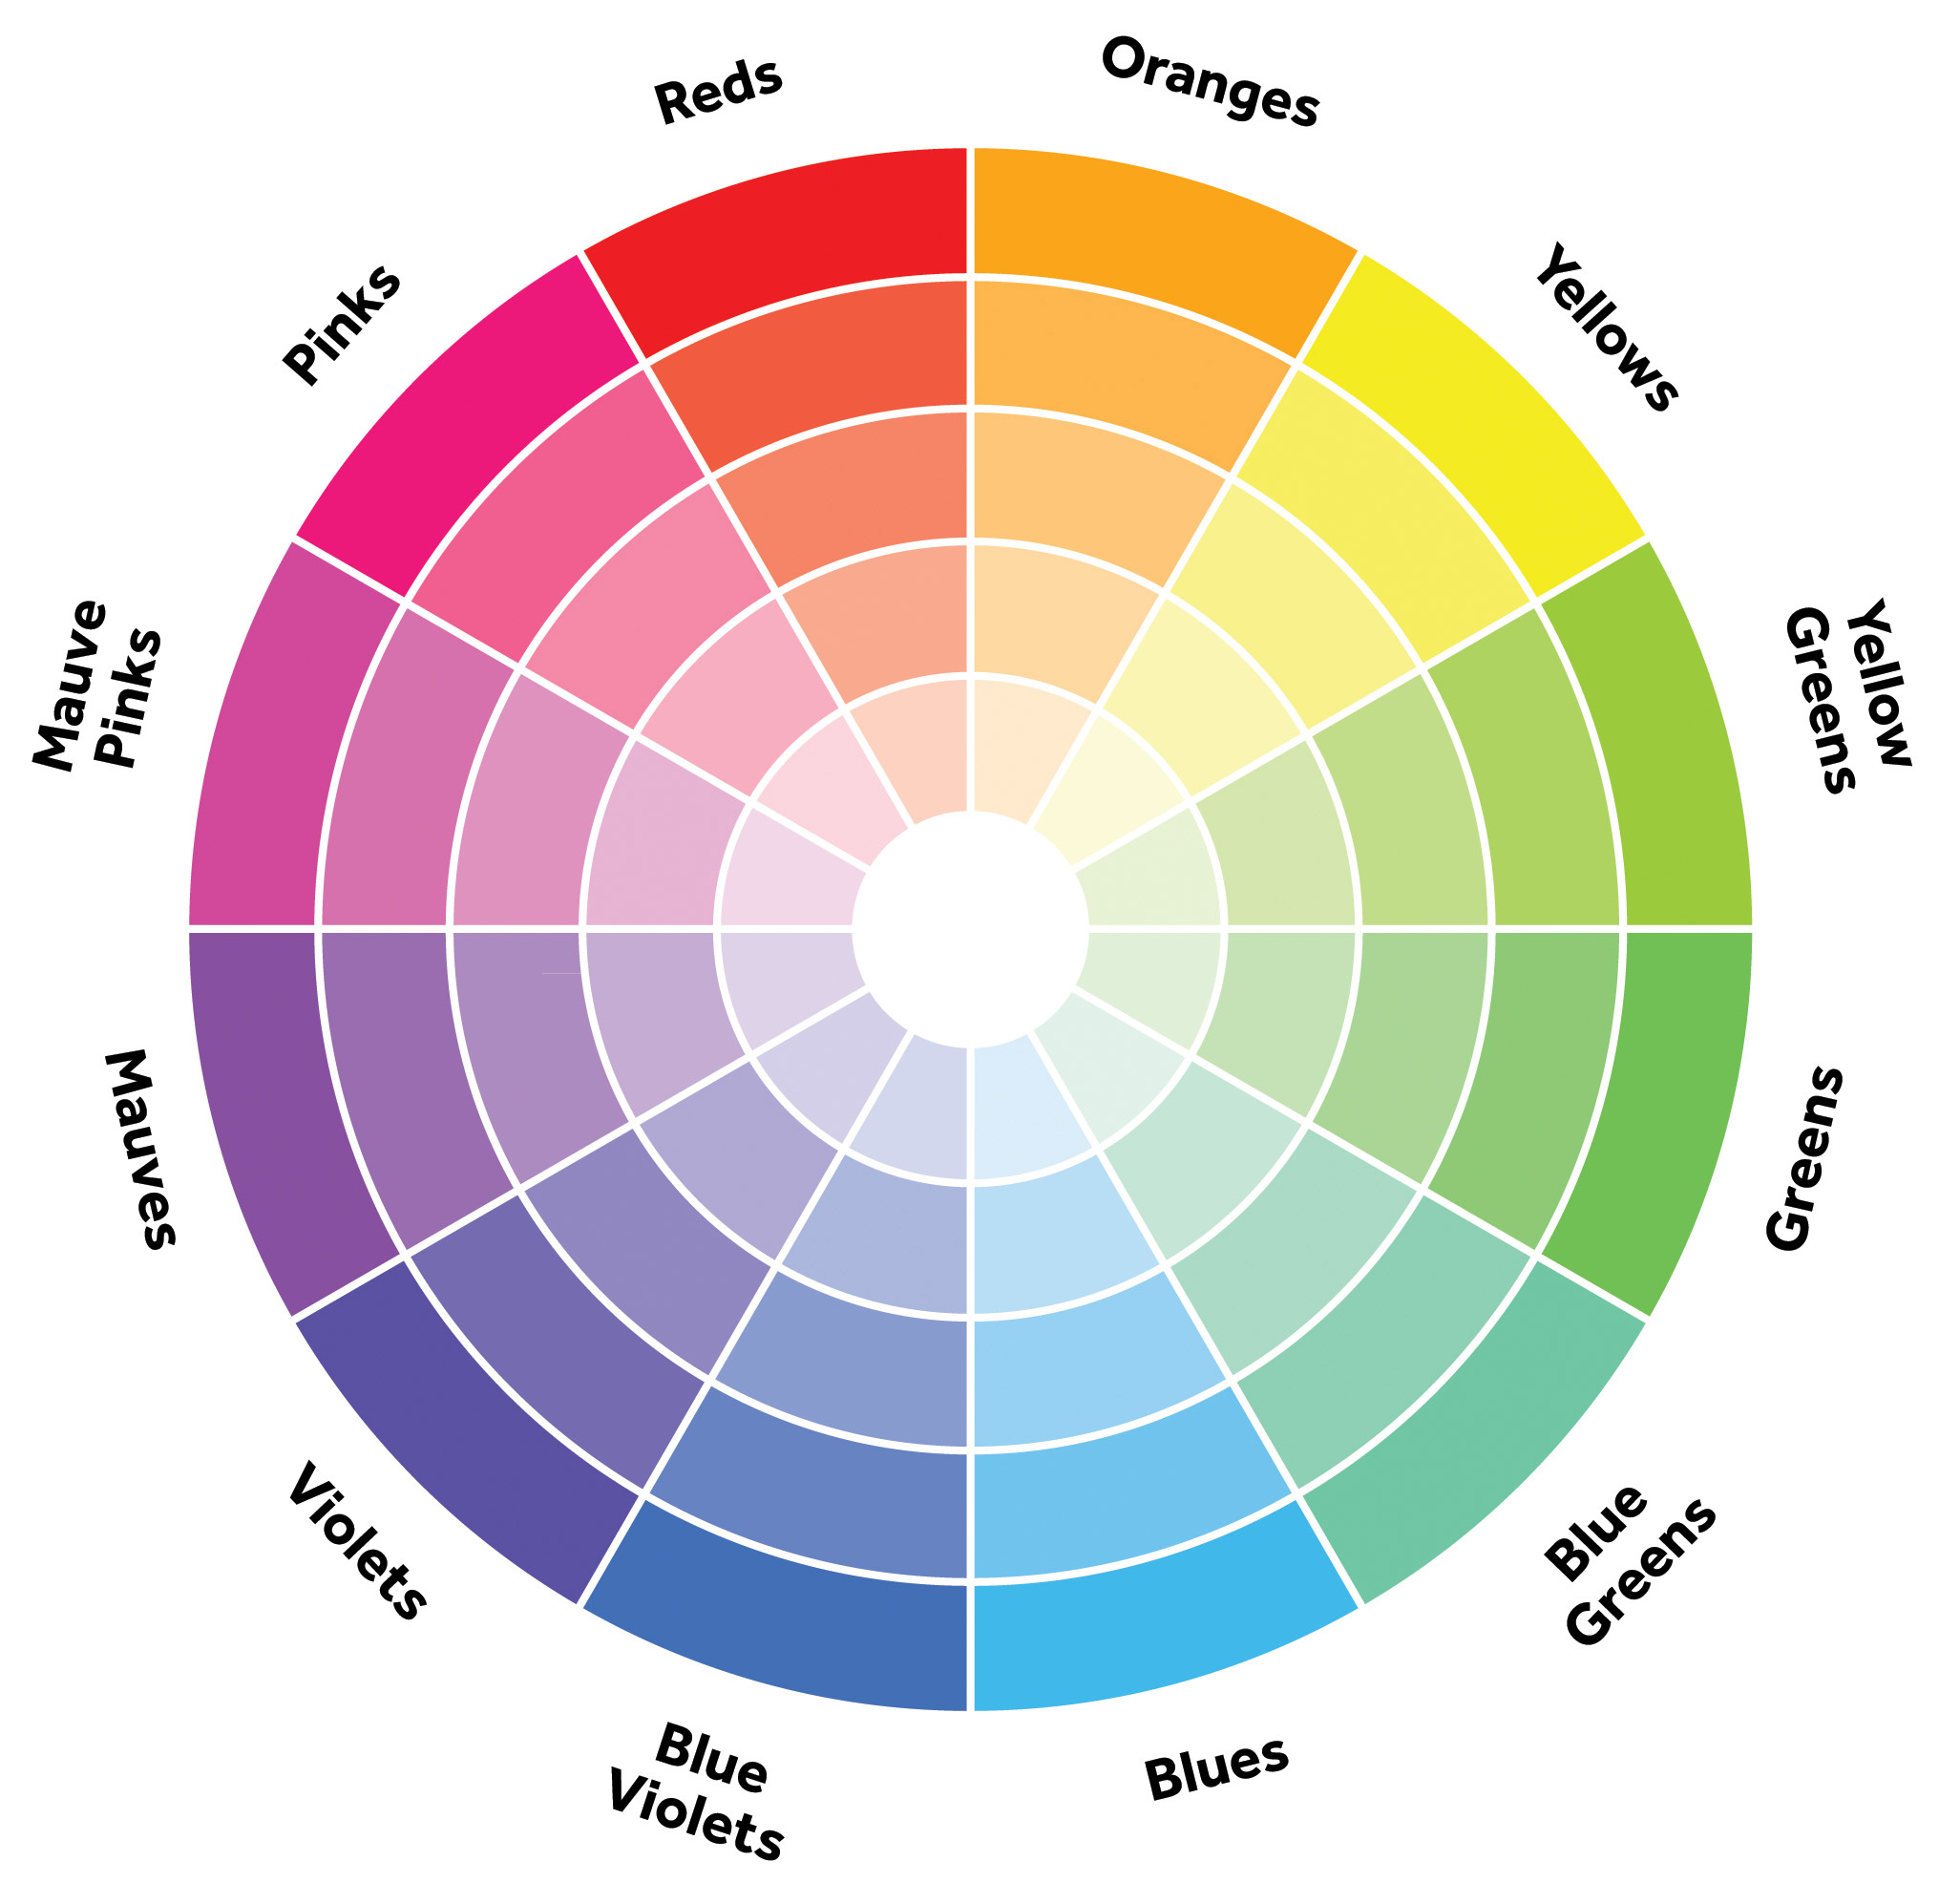 Color Wheel Value And Balance Research 5 Ken Digital Visual Communication